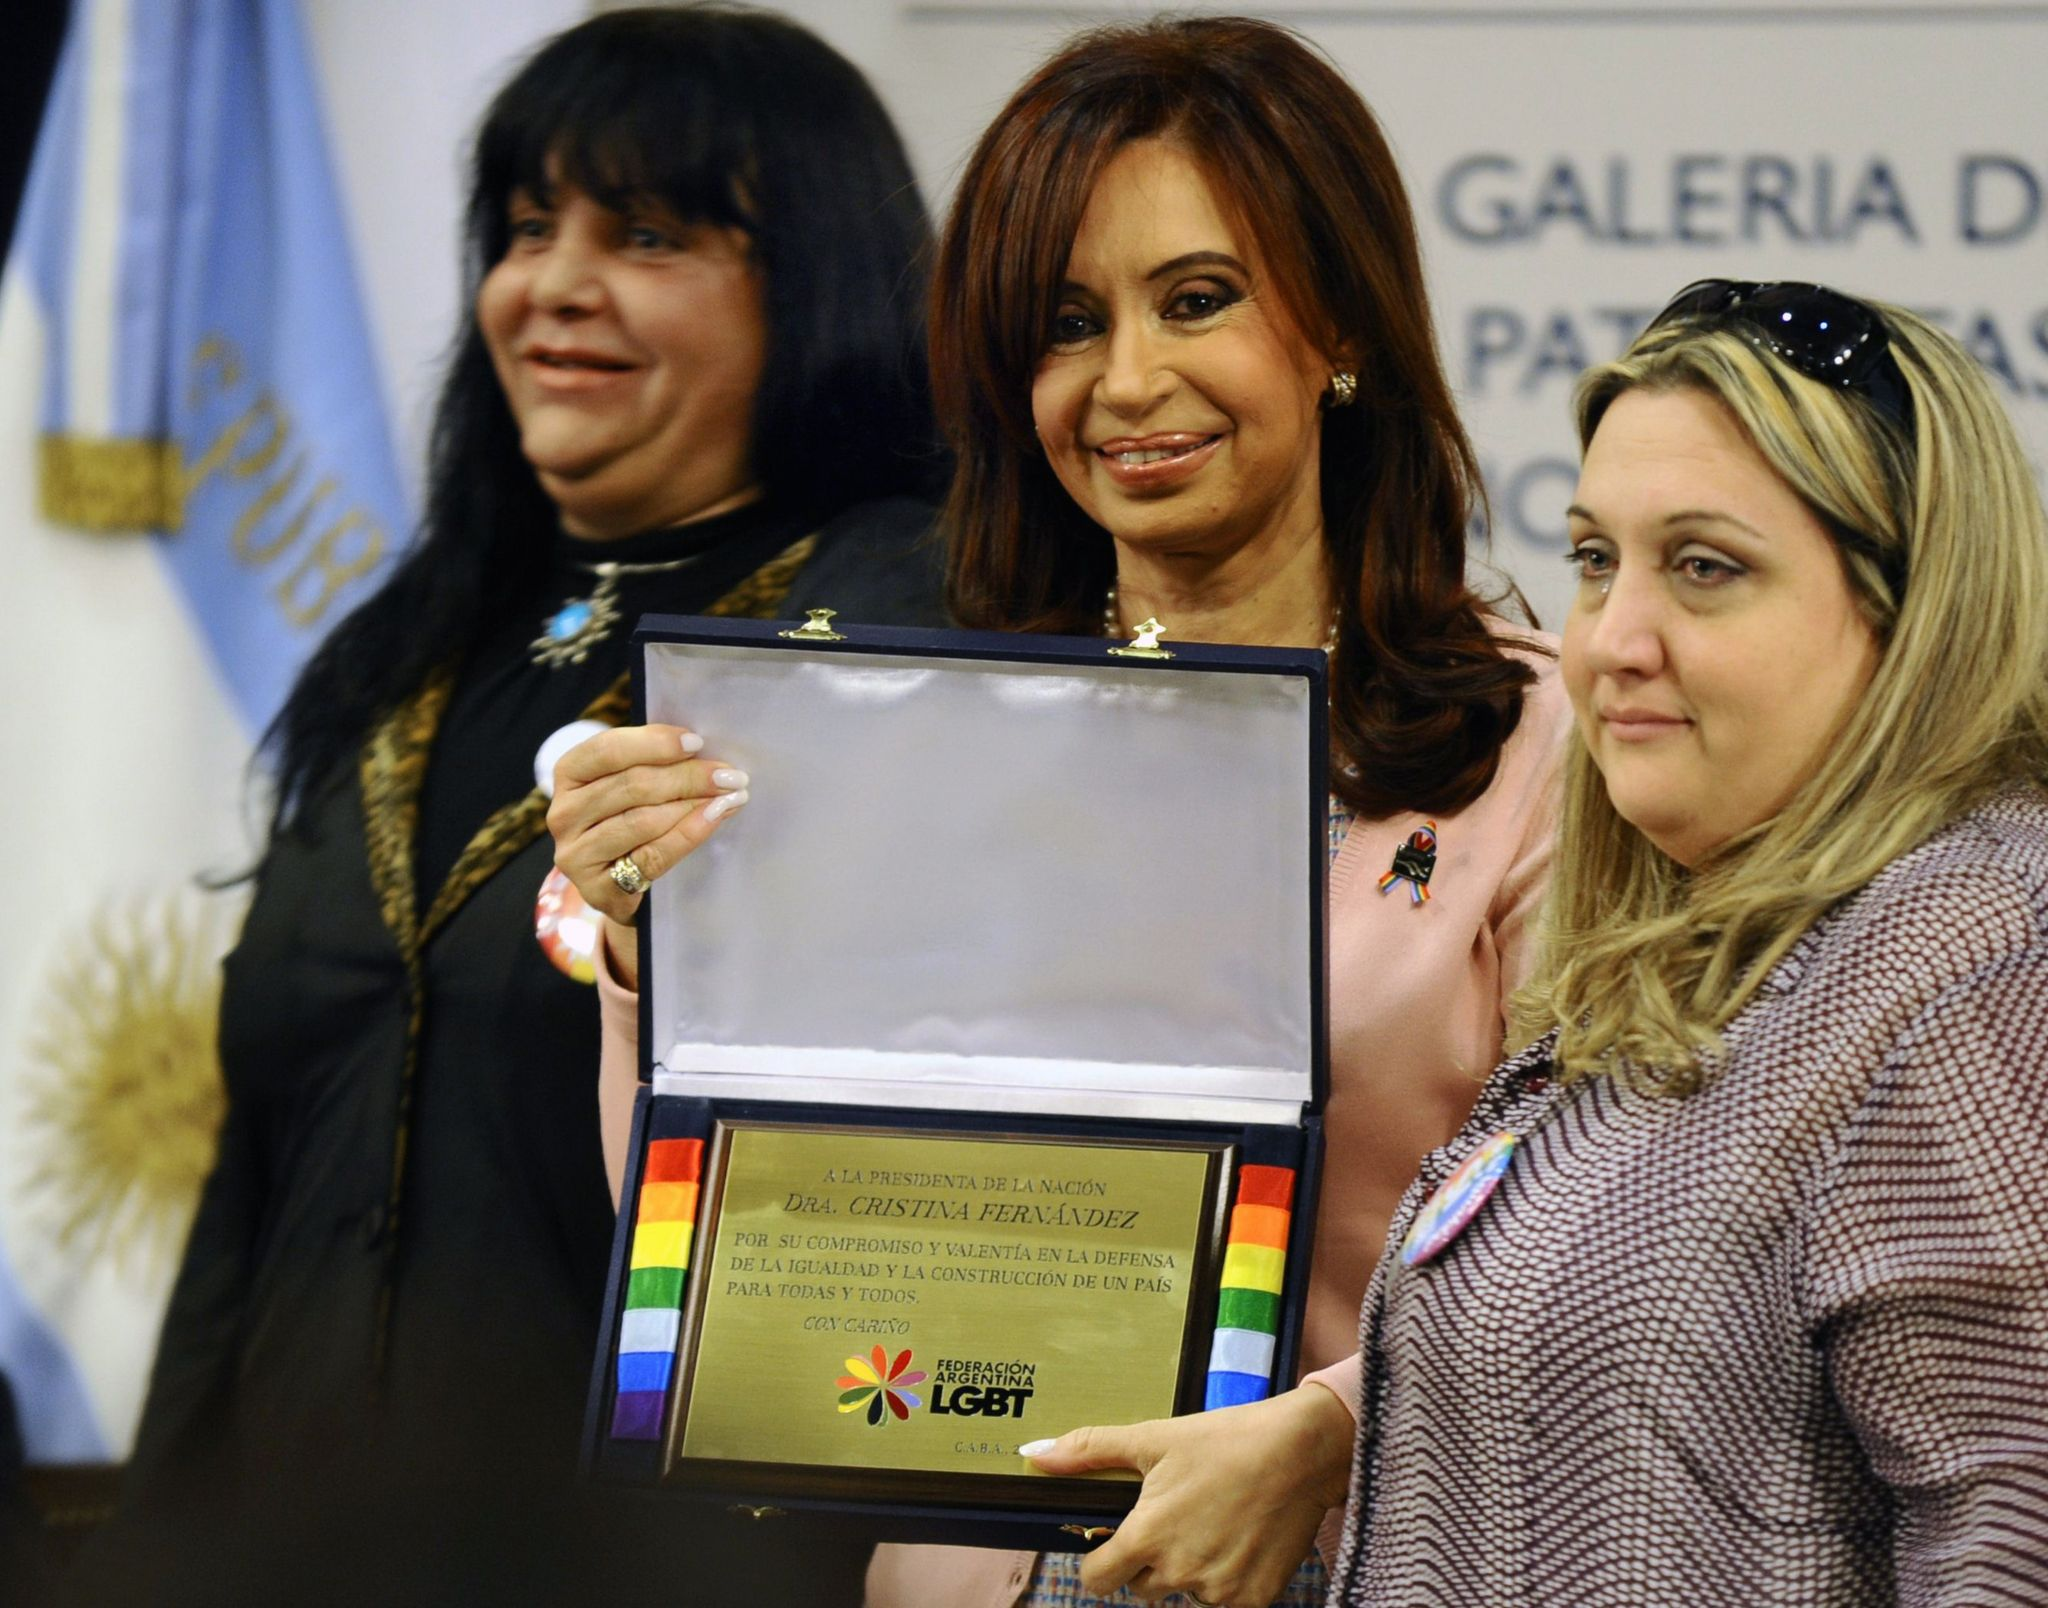 Cristina Fernandez de Kirchner holds a plaque given by members of the Argentine Federation of Lesbians, Gays, Bisexuals and Transvestites